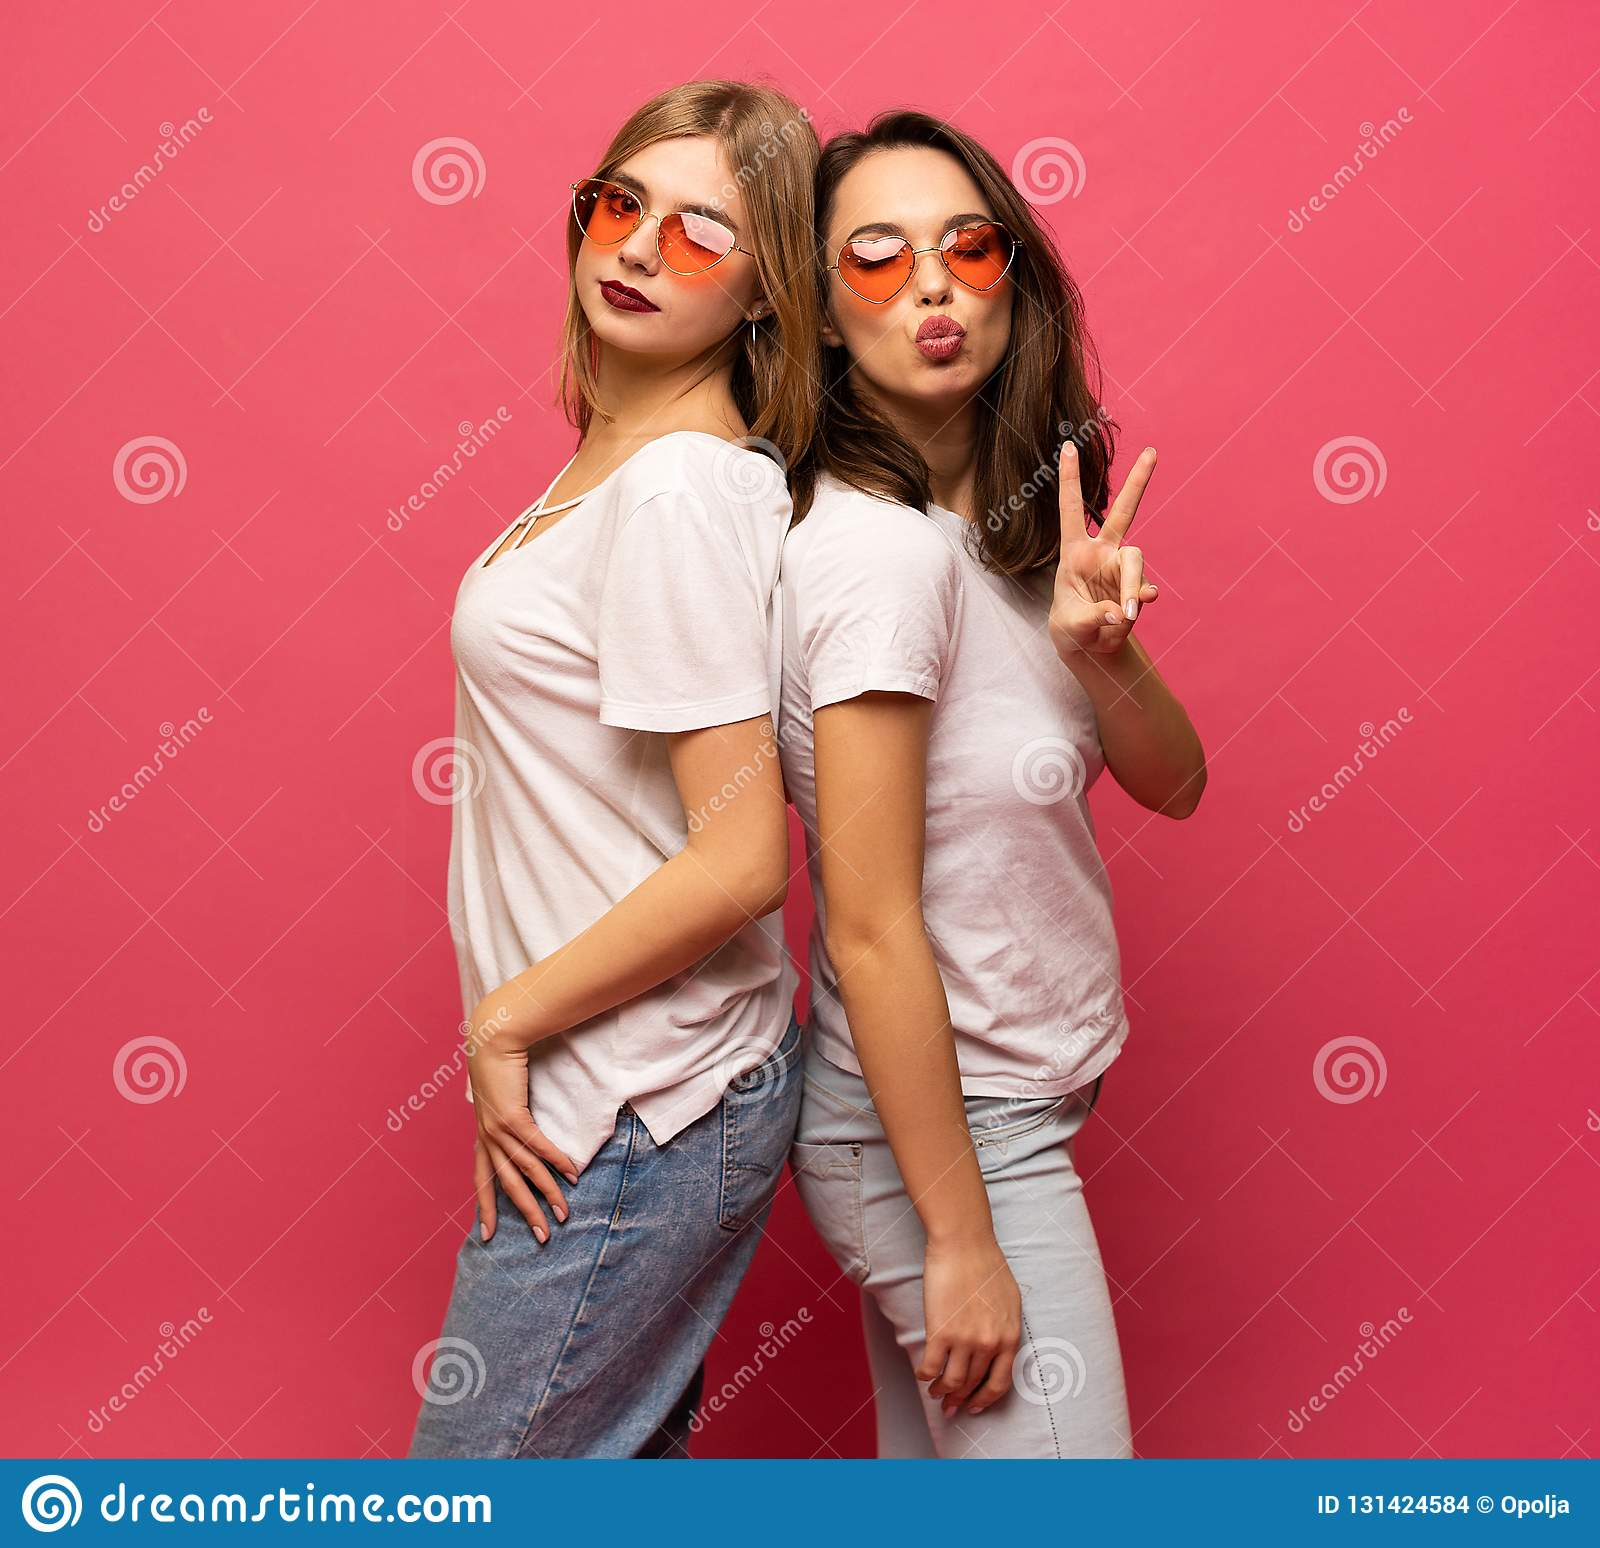 Two female friends hugging and having fun together, showing peace gesture while looking at camera, isolated over pink